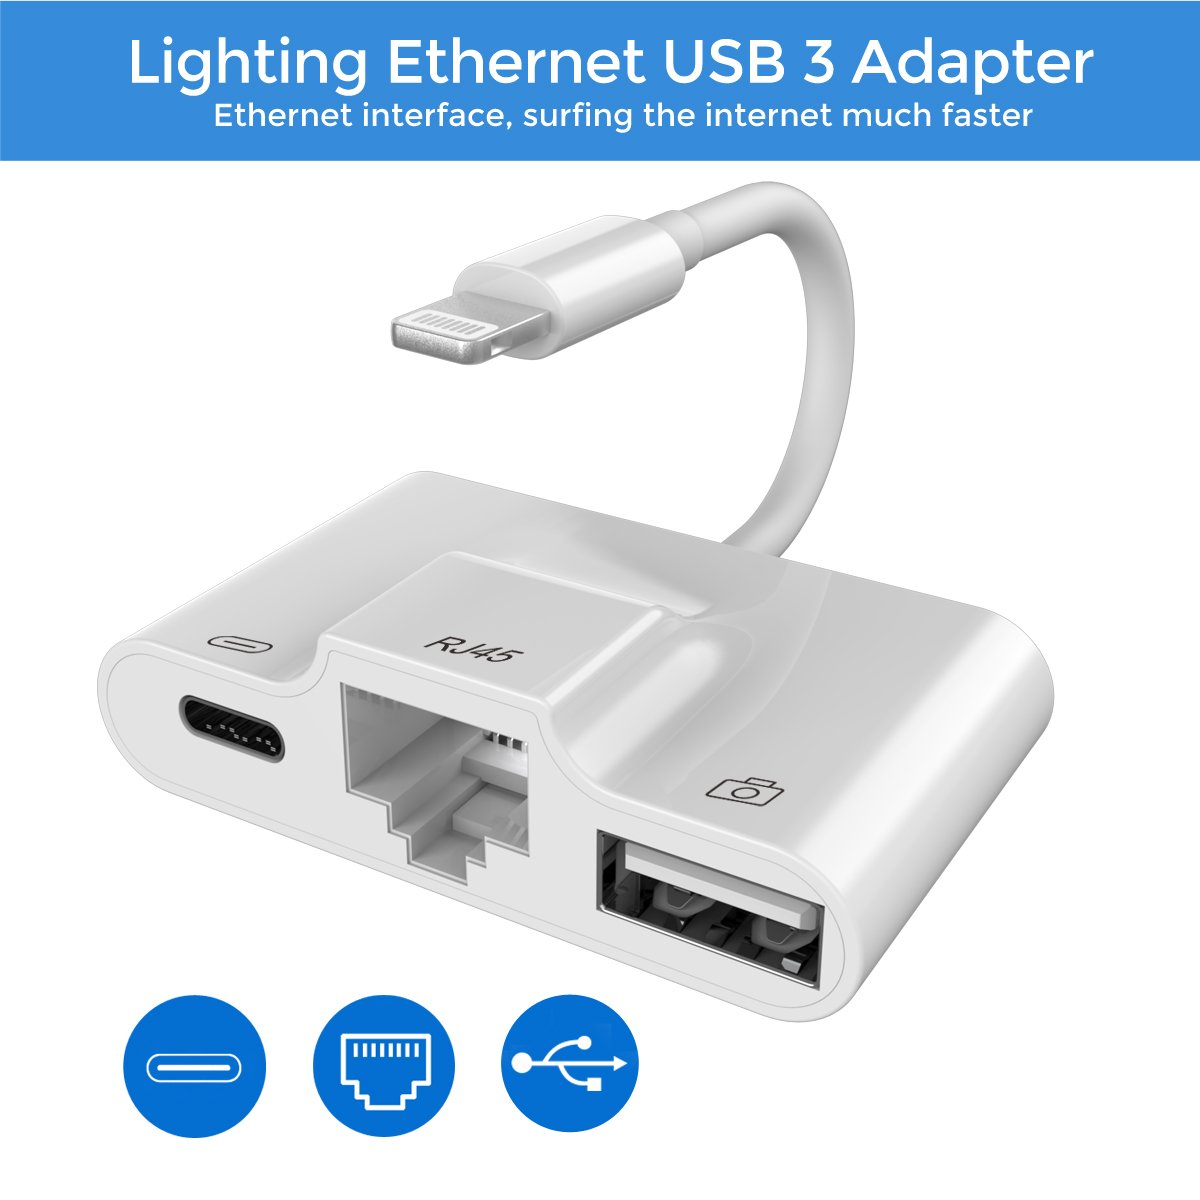 Lightning to RJ45 Ethernet LAN Wired Network Adapter, Lightning Ethernet Adapter, Lightning to USB Camera Adapter, Charging & Data Sync OTG Adapter Compatible iPhone/iPad, Required iOS 10.0 up by RayCue (Image #8)